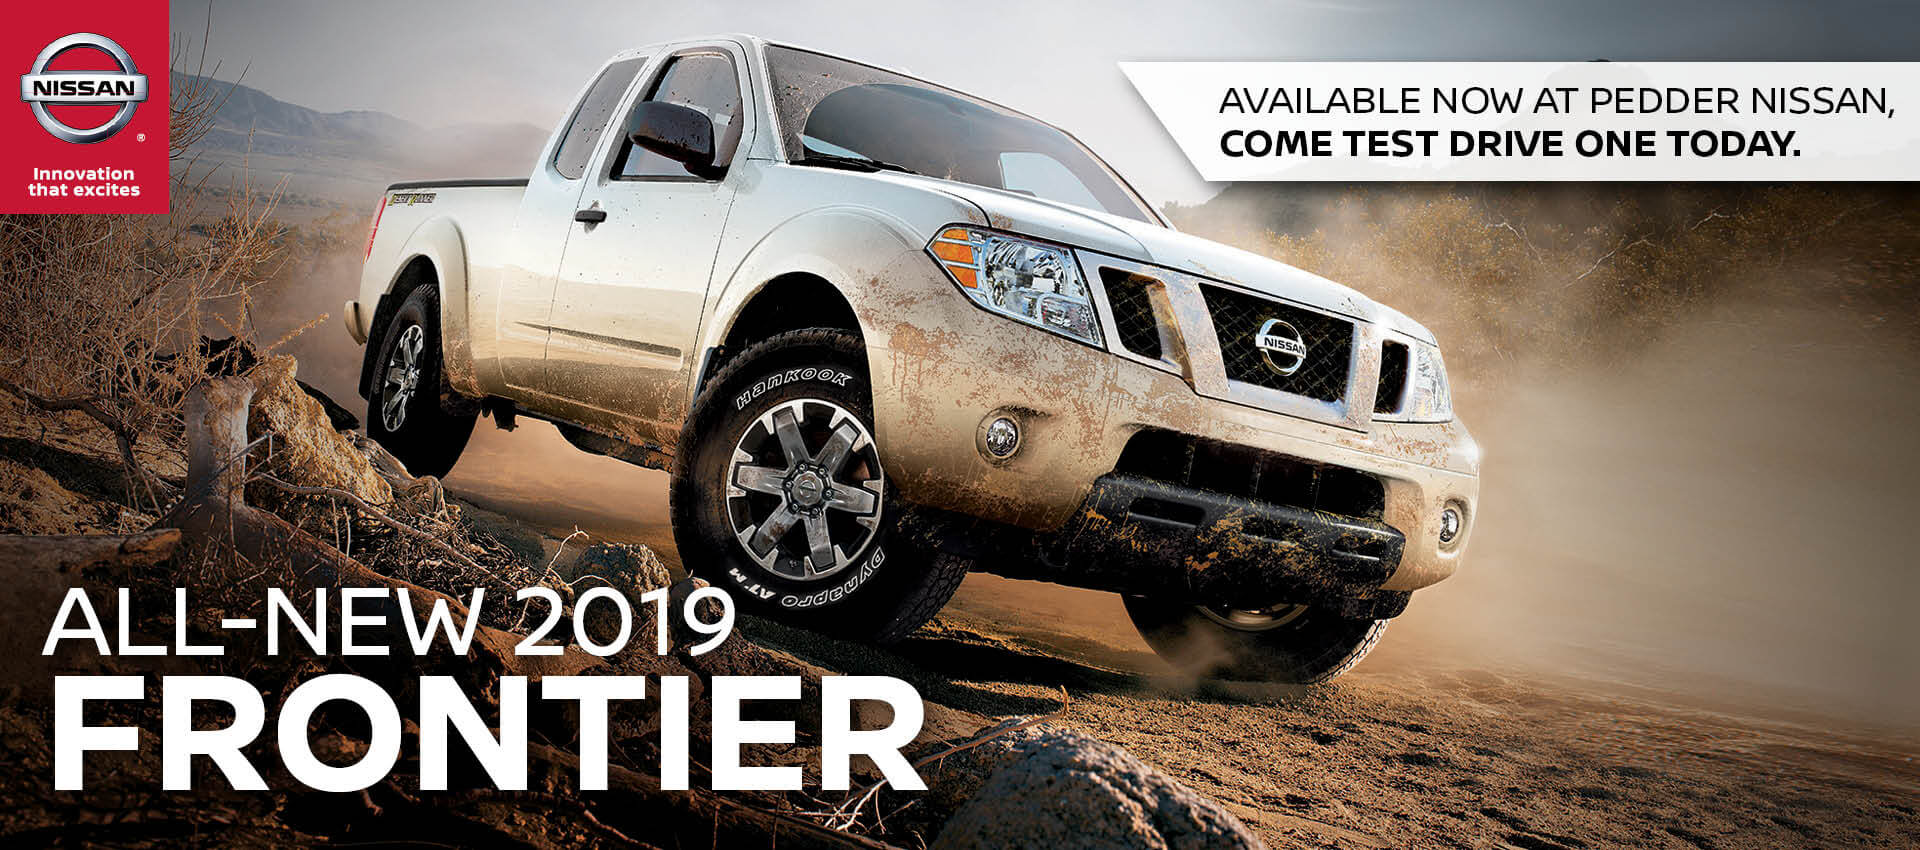 All-New 2019 Frontier